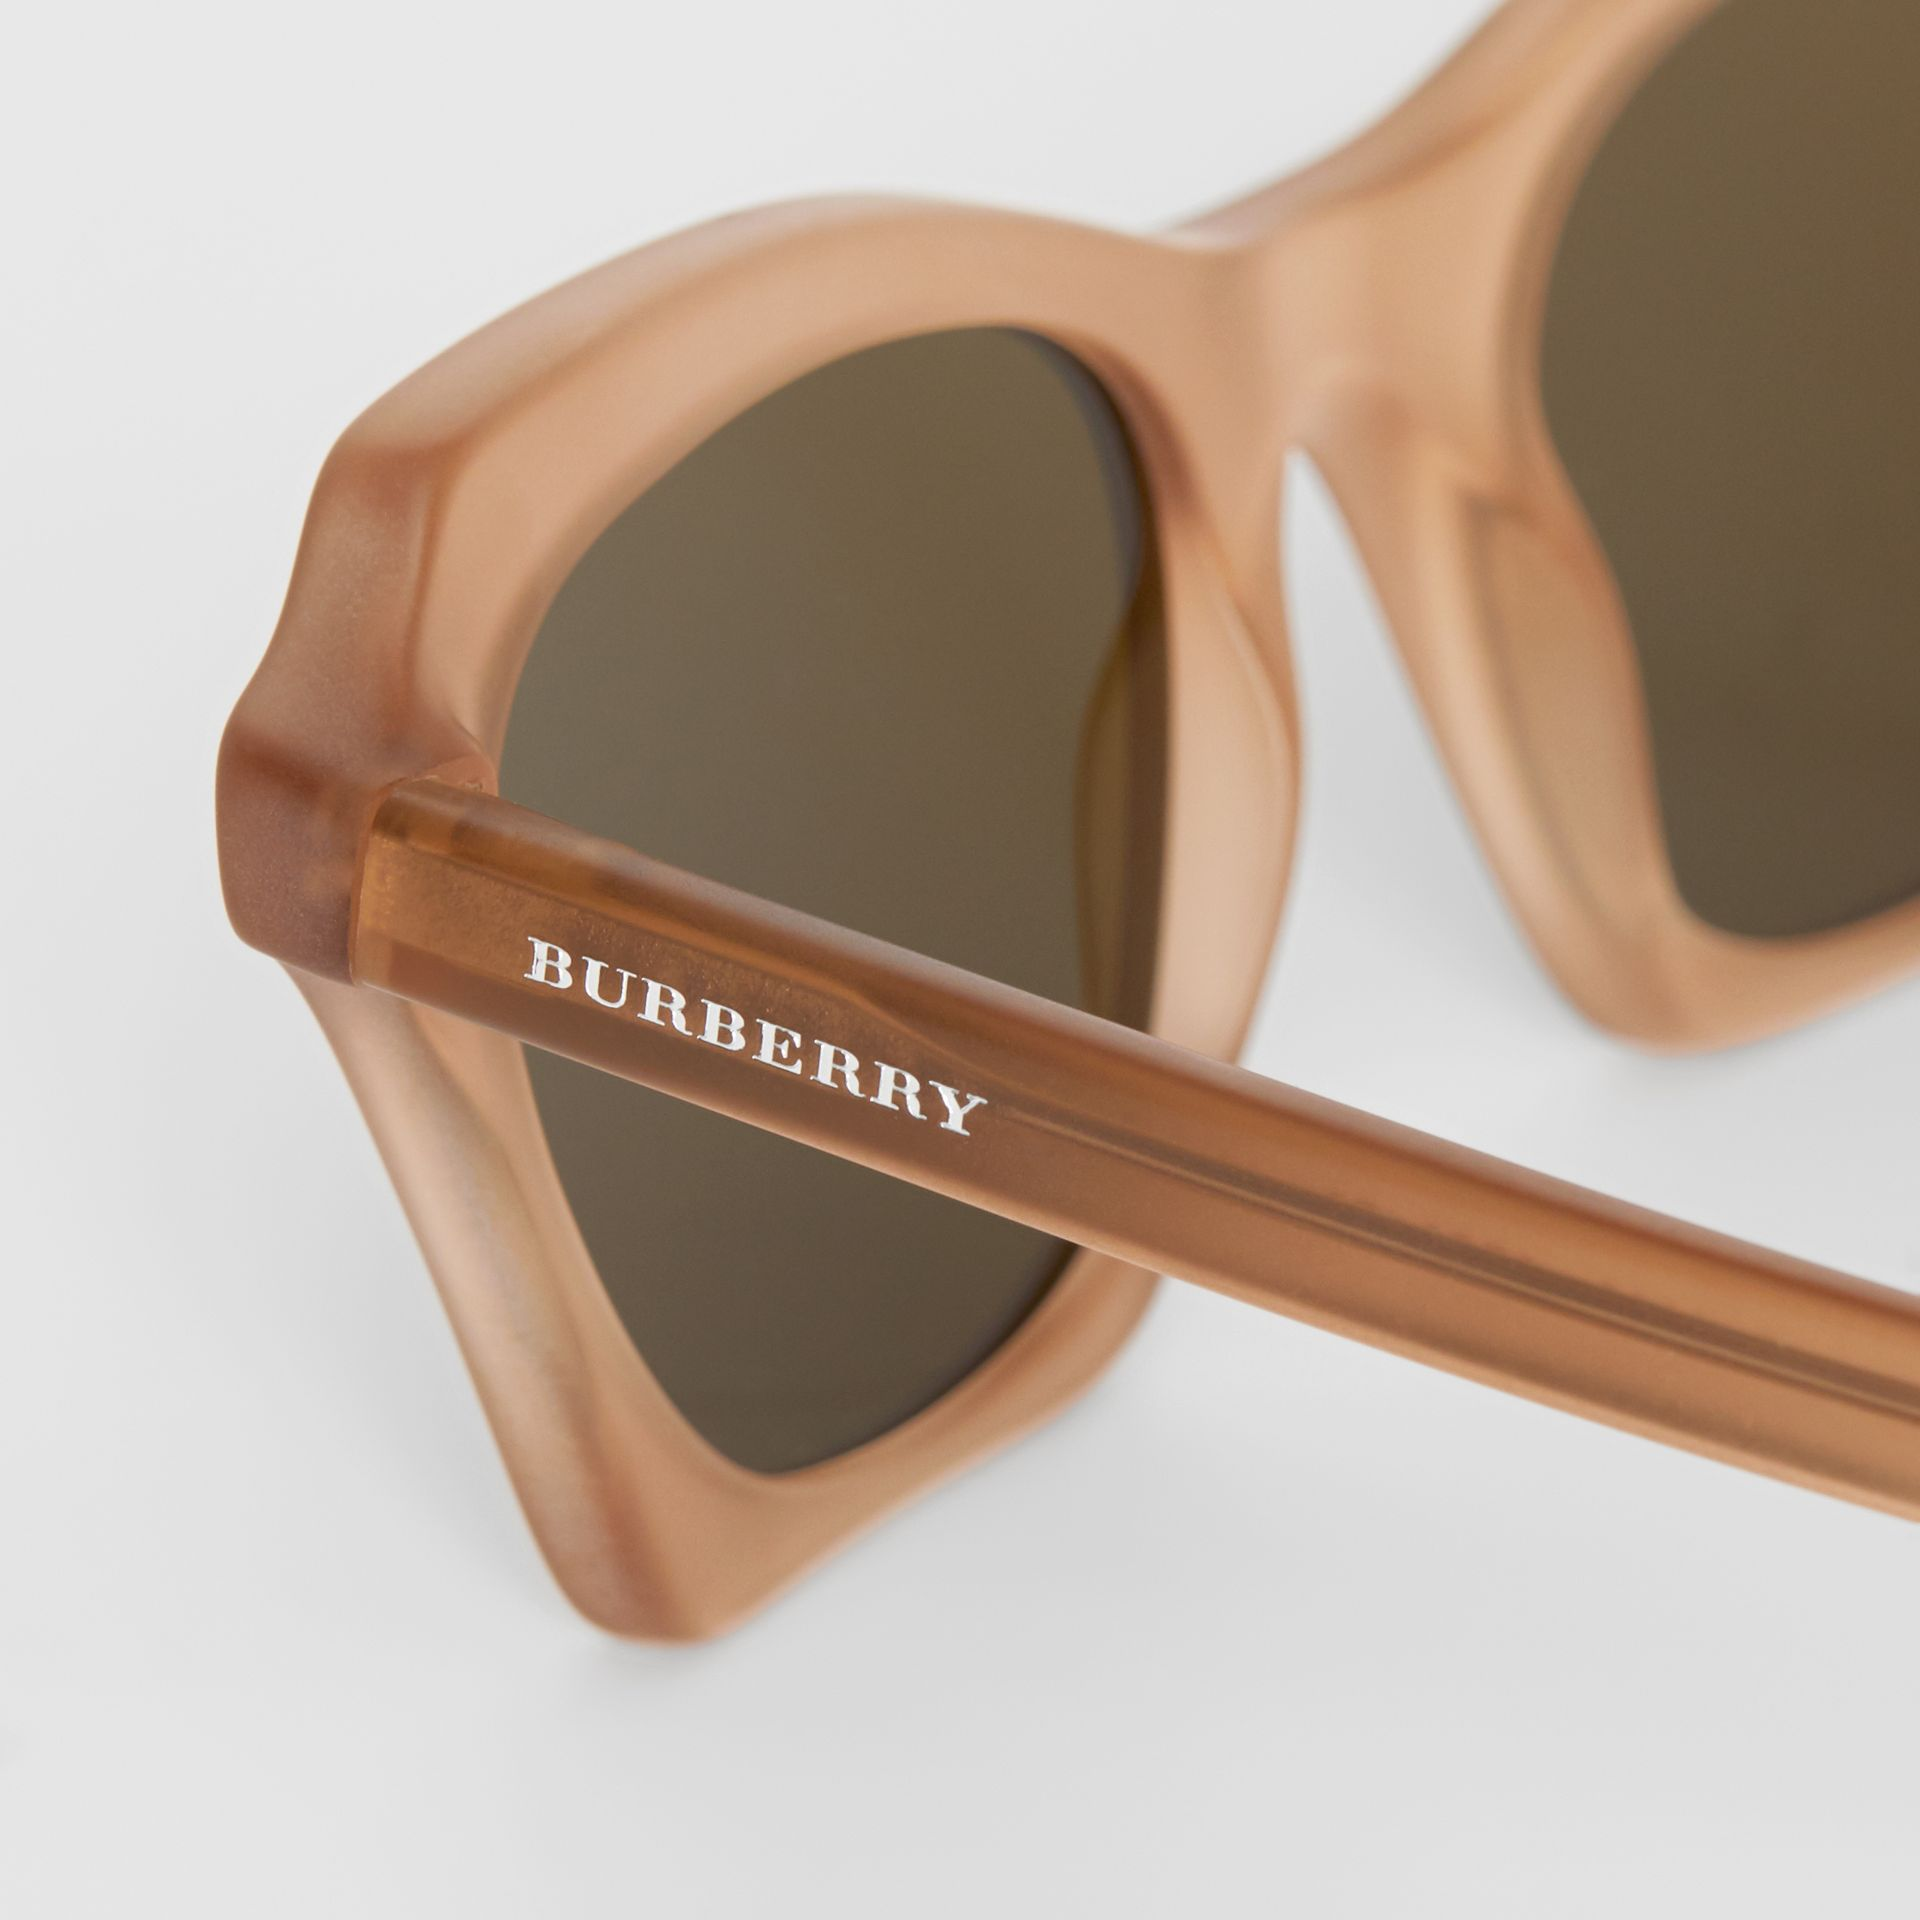 Butterfly Frame Sunglasses in Brown - Women | Burberry - gallery image 1